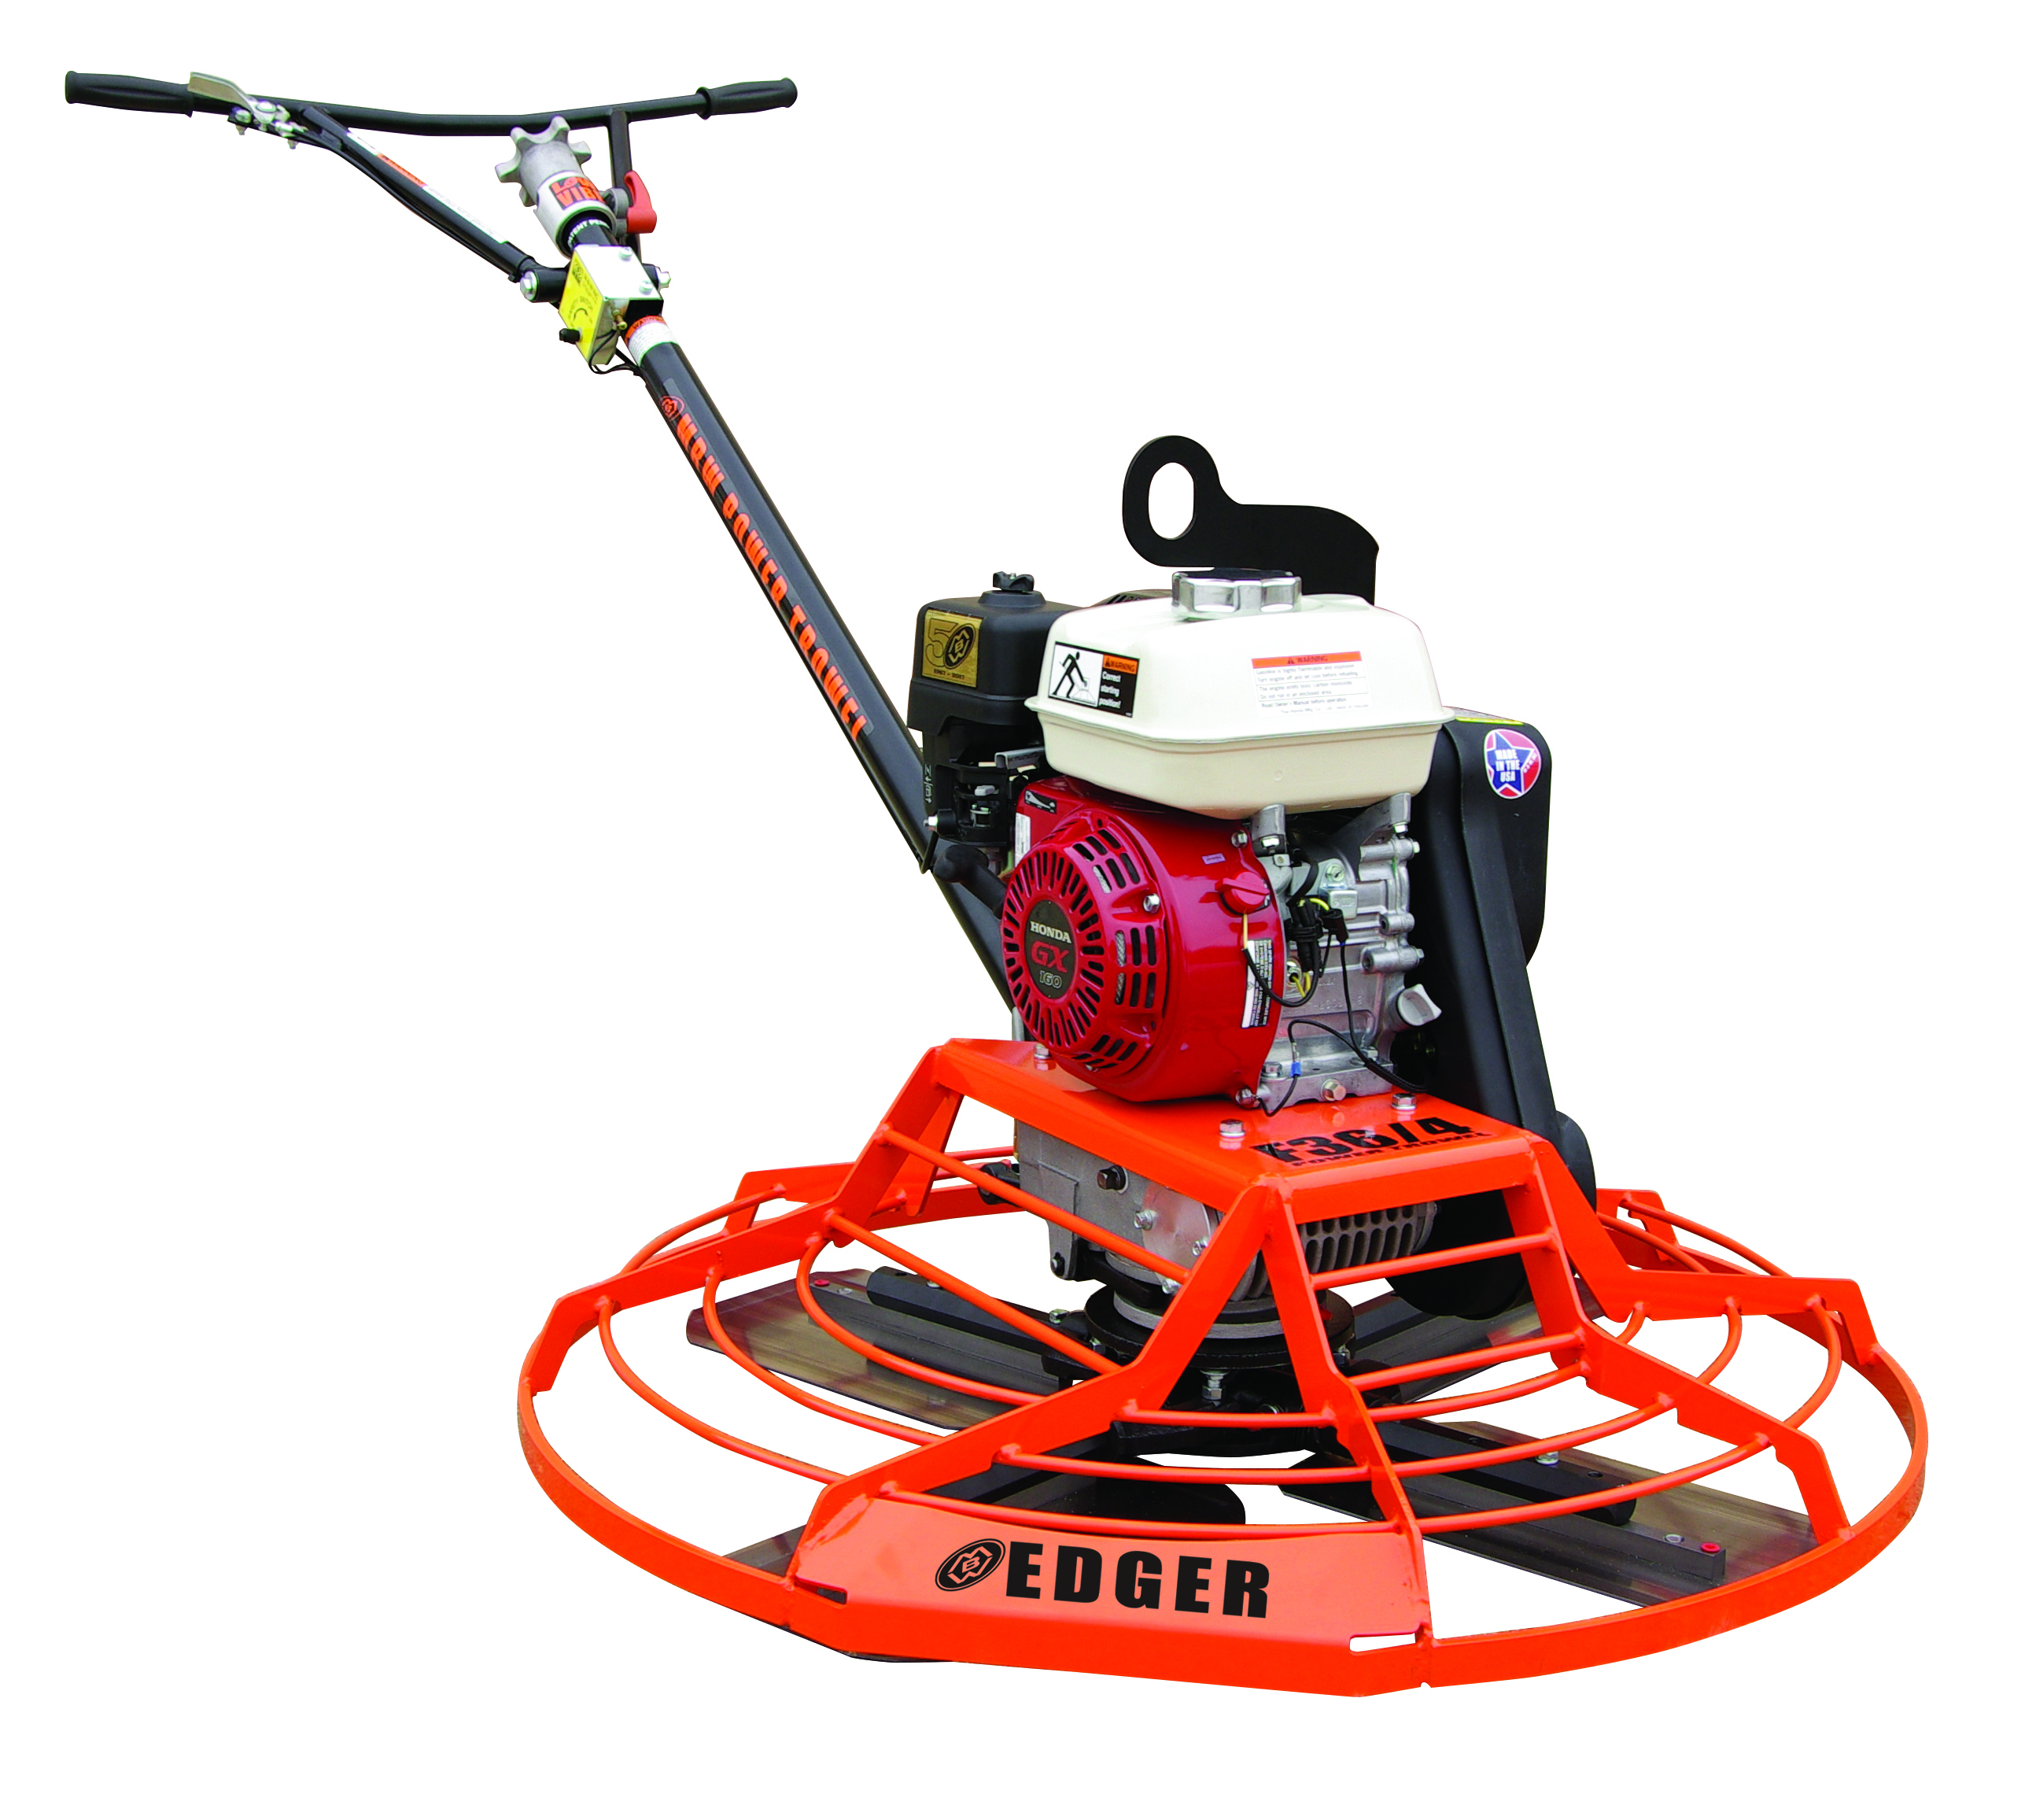 parts blades honda ton ruggedmade by lawn log splitter powered horizontal vertical side horz mower engine gas way right